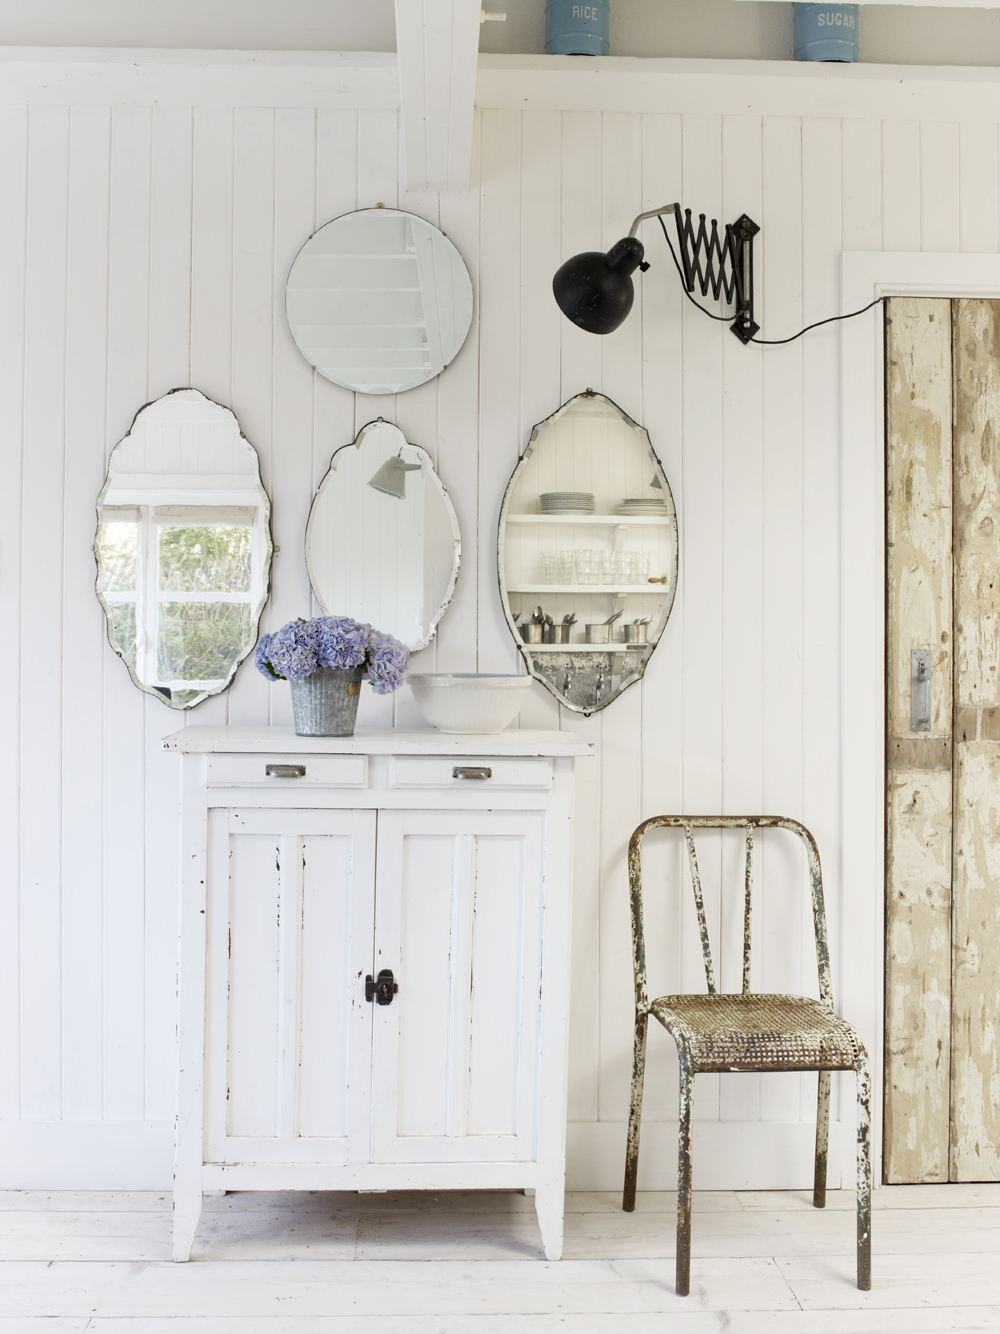 Take a tour of the gorgeous White Cabin in the village of Winchelsea, a beach town in East Sussex, South England. - Vintage Mirrors Gallery Wall